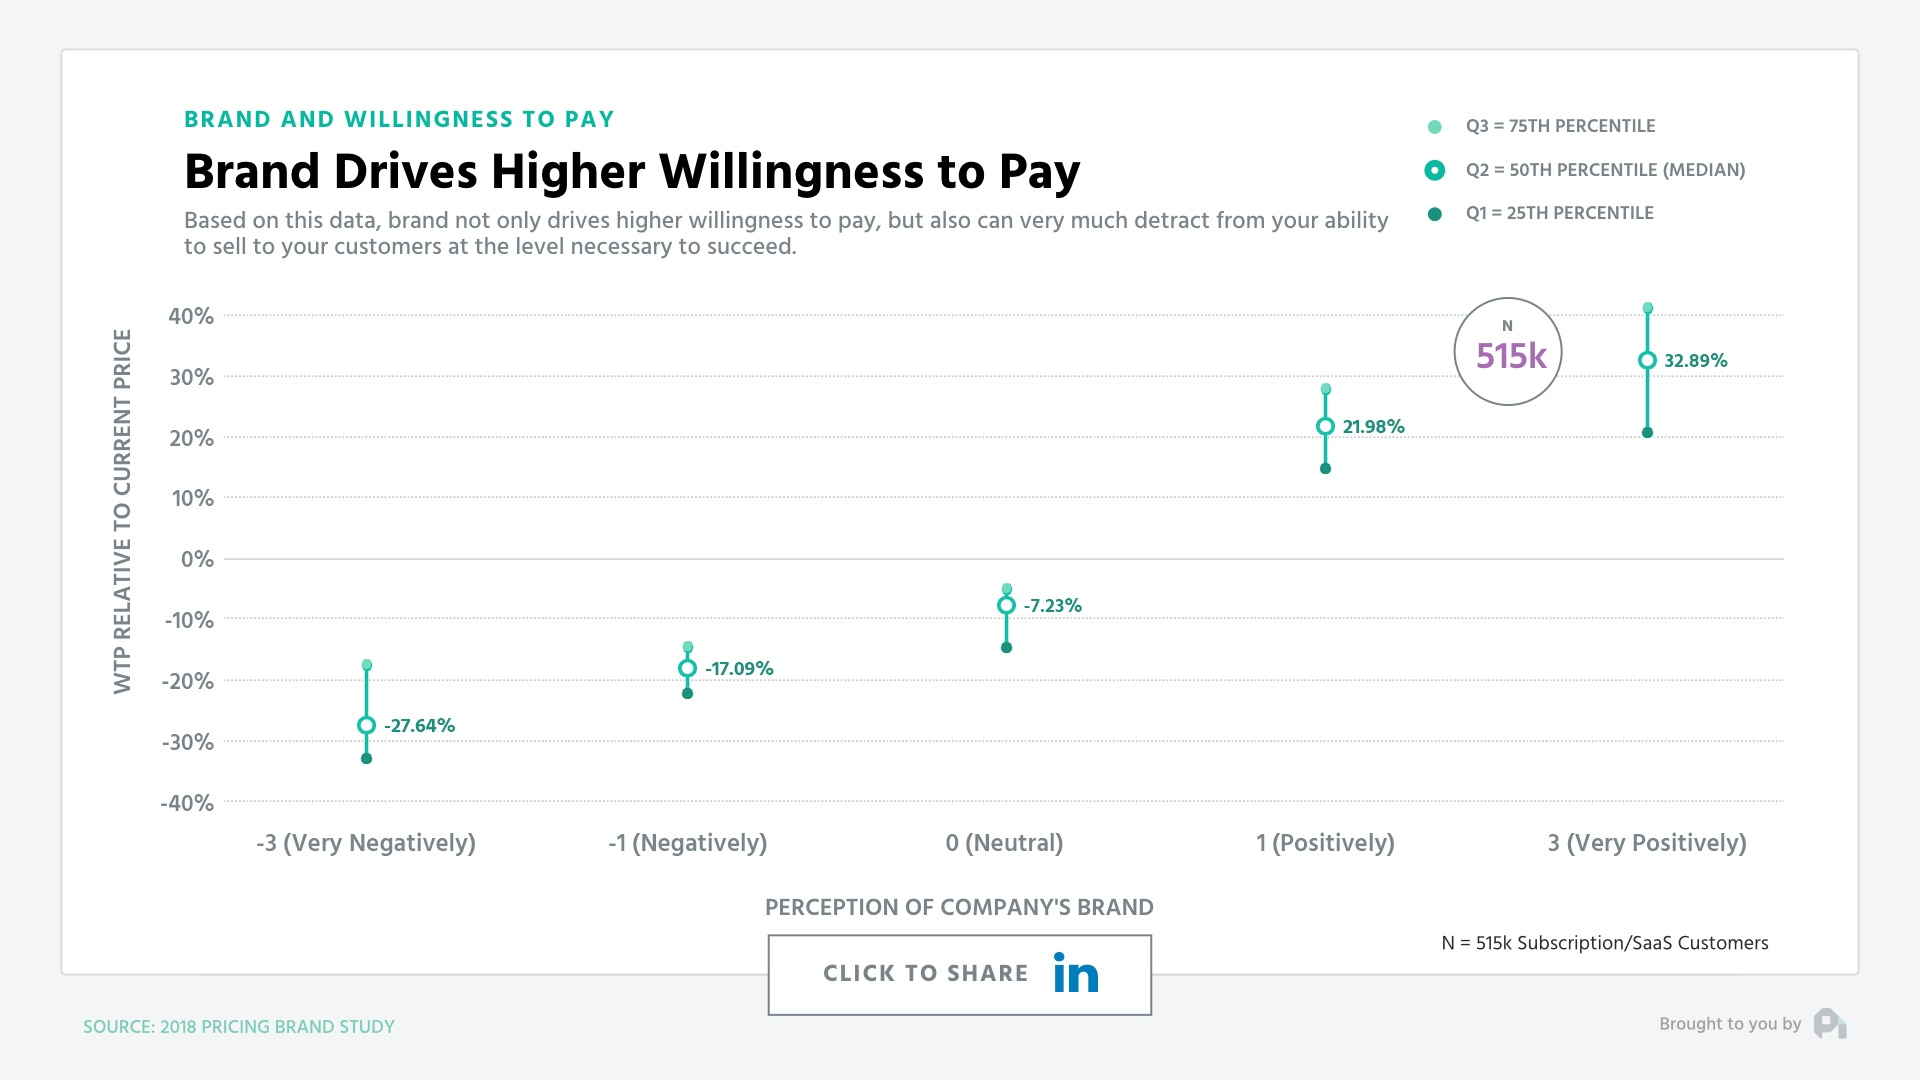 Brand Drives Higher Willingness to Pay - Graph